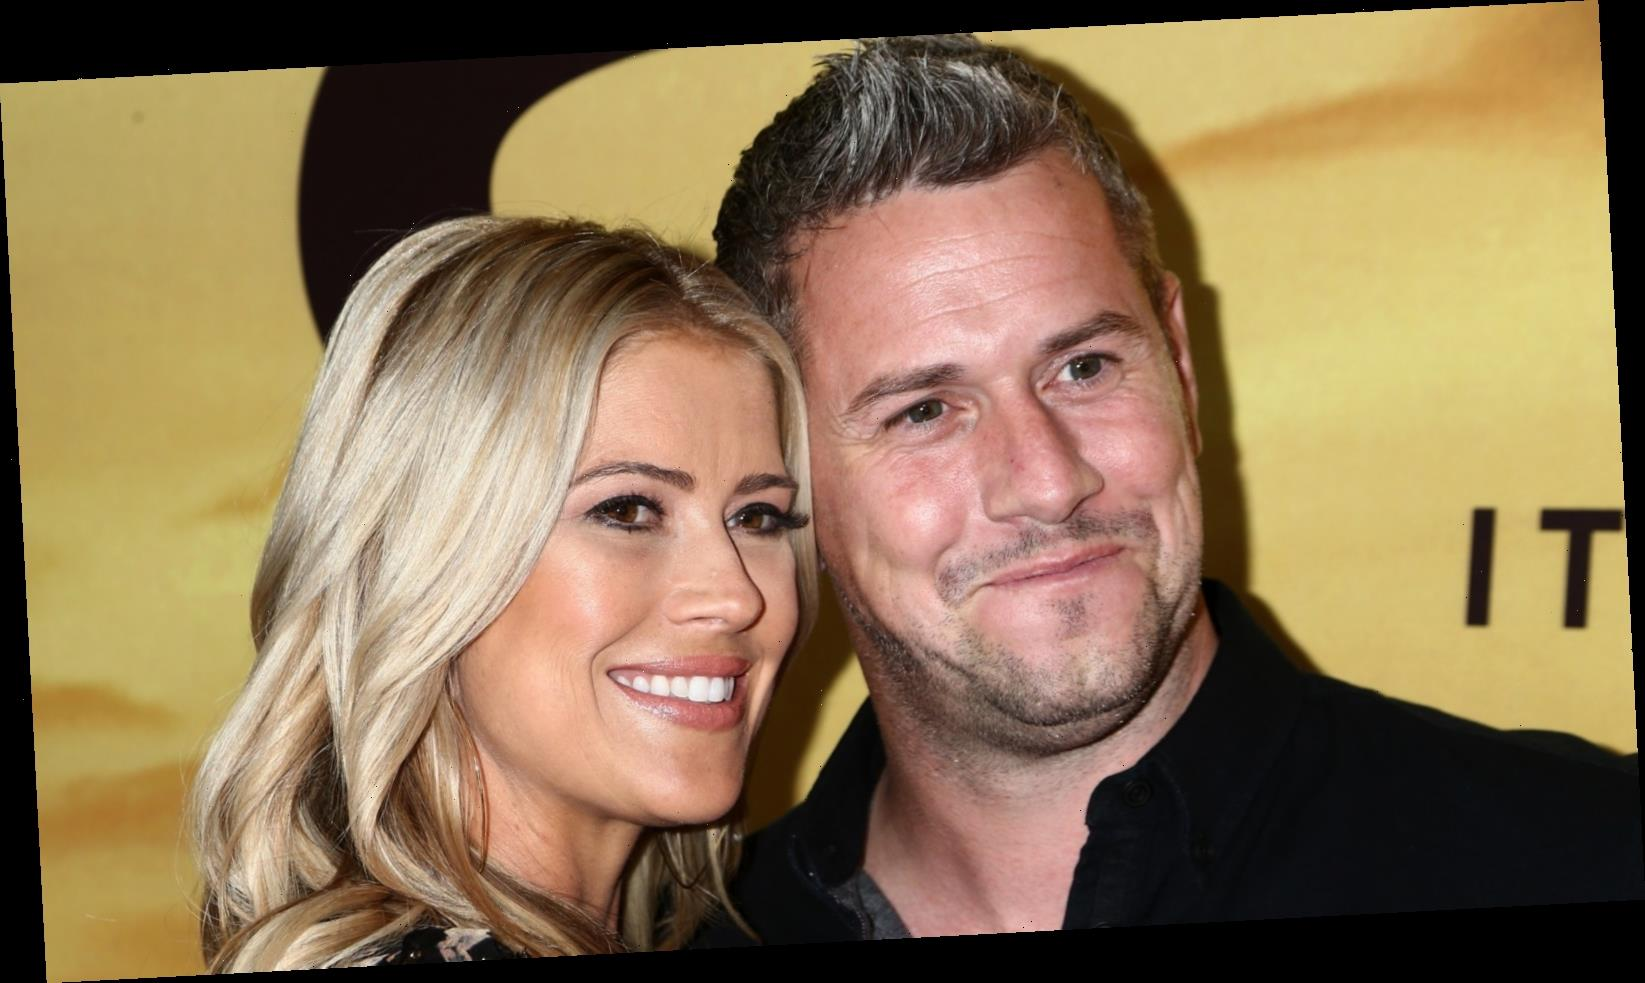 The strange way Ant Anstead is dealing with his breakup from Christina